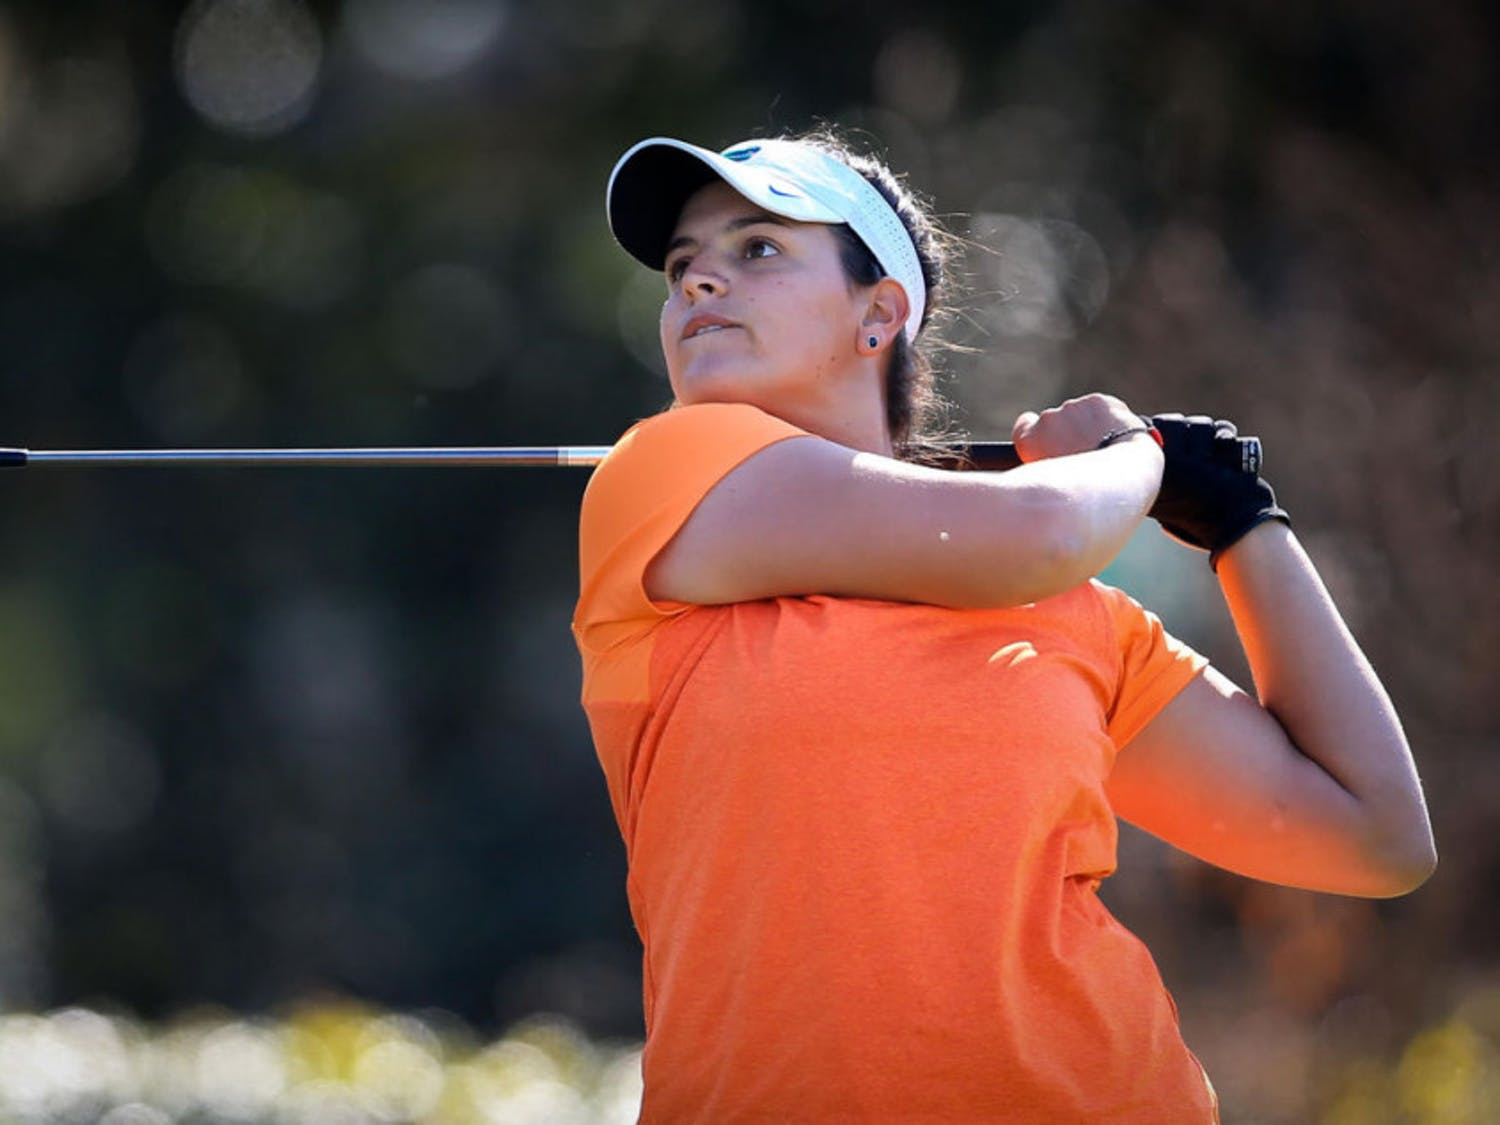 Maria Torres watches her shot during the SunTrust Gator Women's Golf Invitational on Saturday, March 11, 2017, at the Mark Bostick Golf Course in Gainesville.